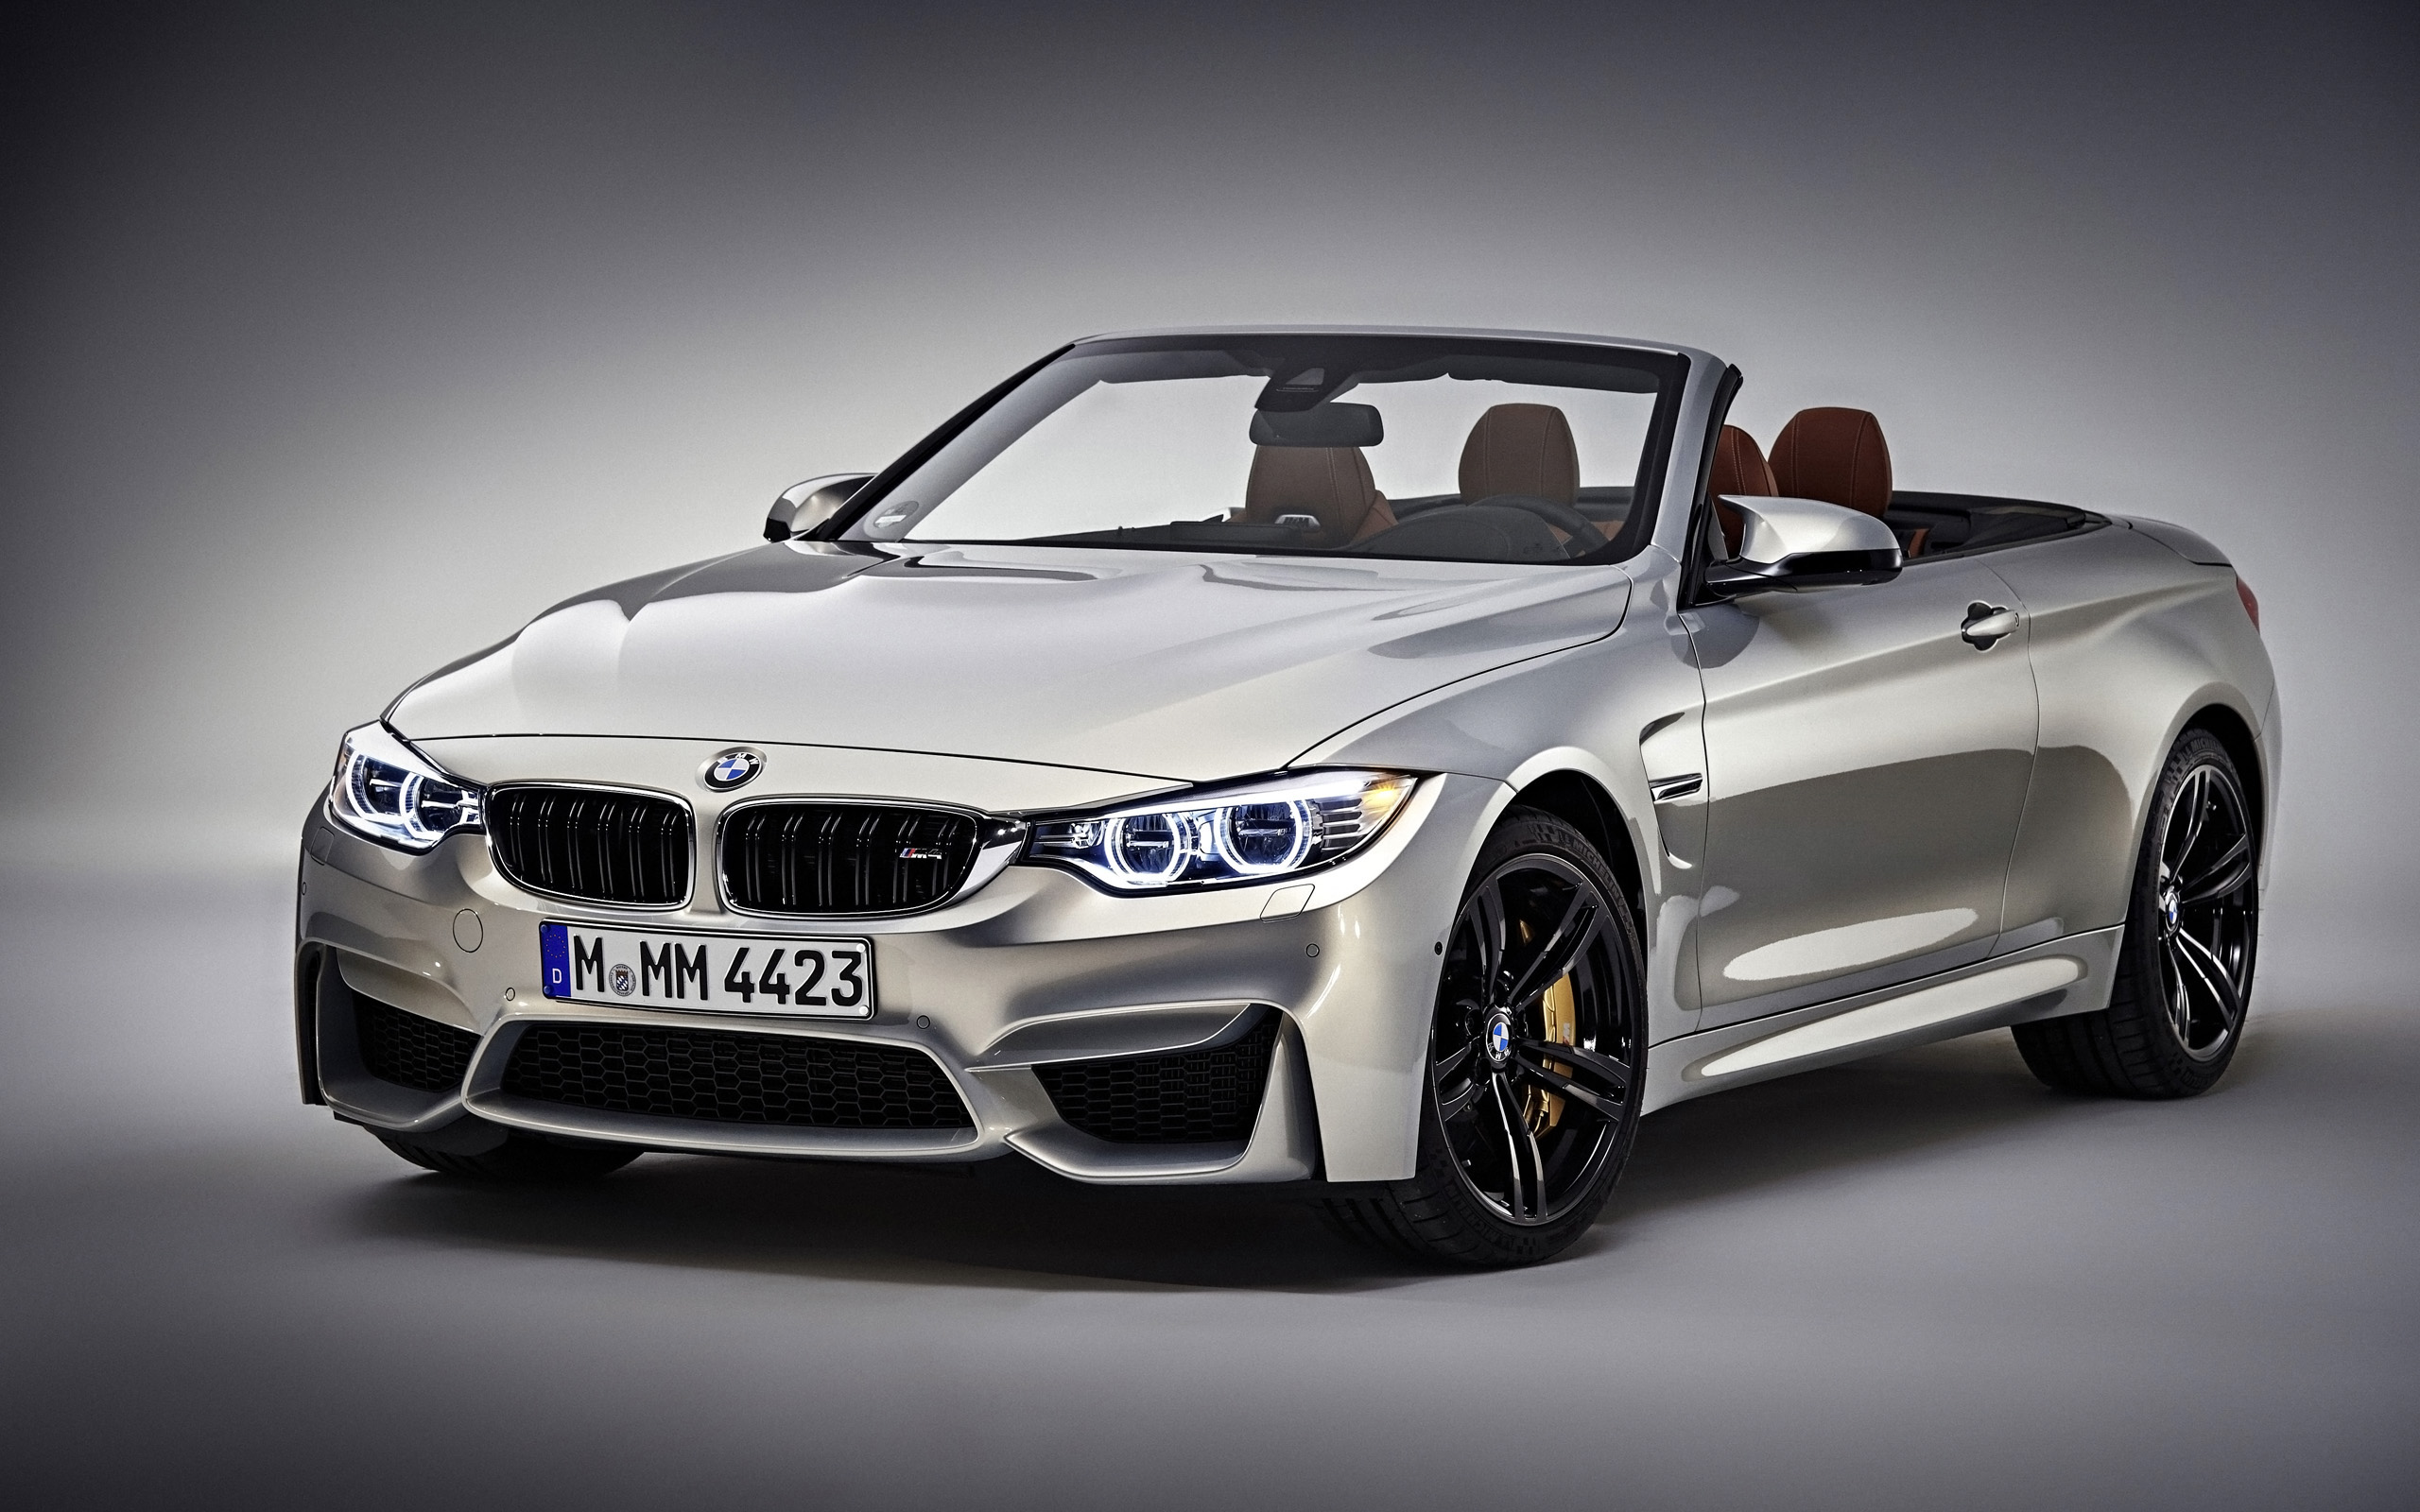 2015 Bmw M4 Convertible Wallpaper Hd Car Wallpapers